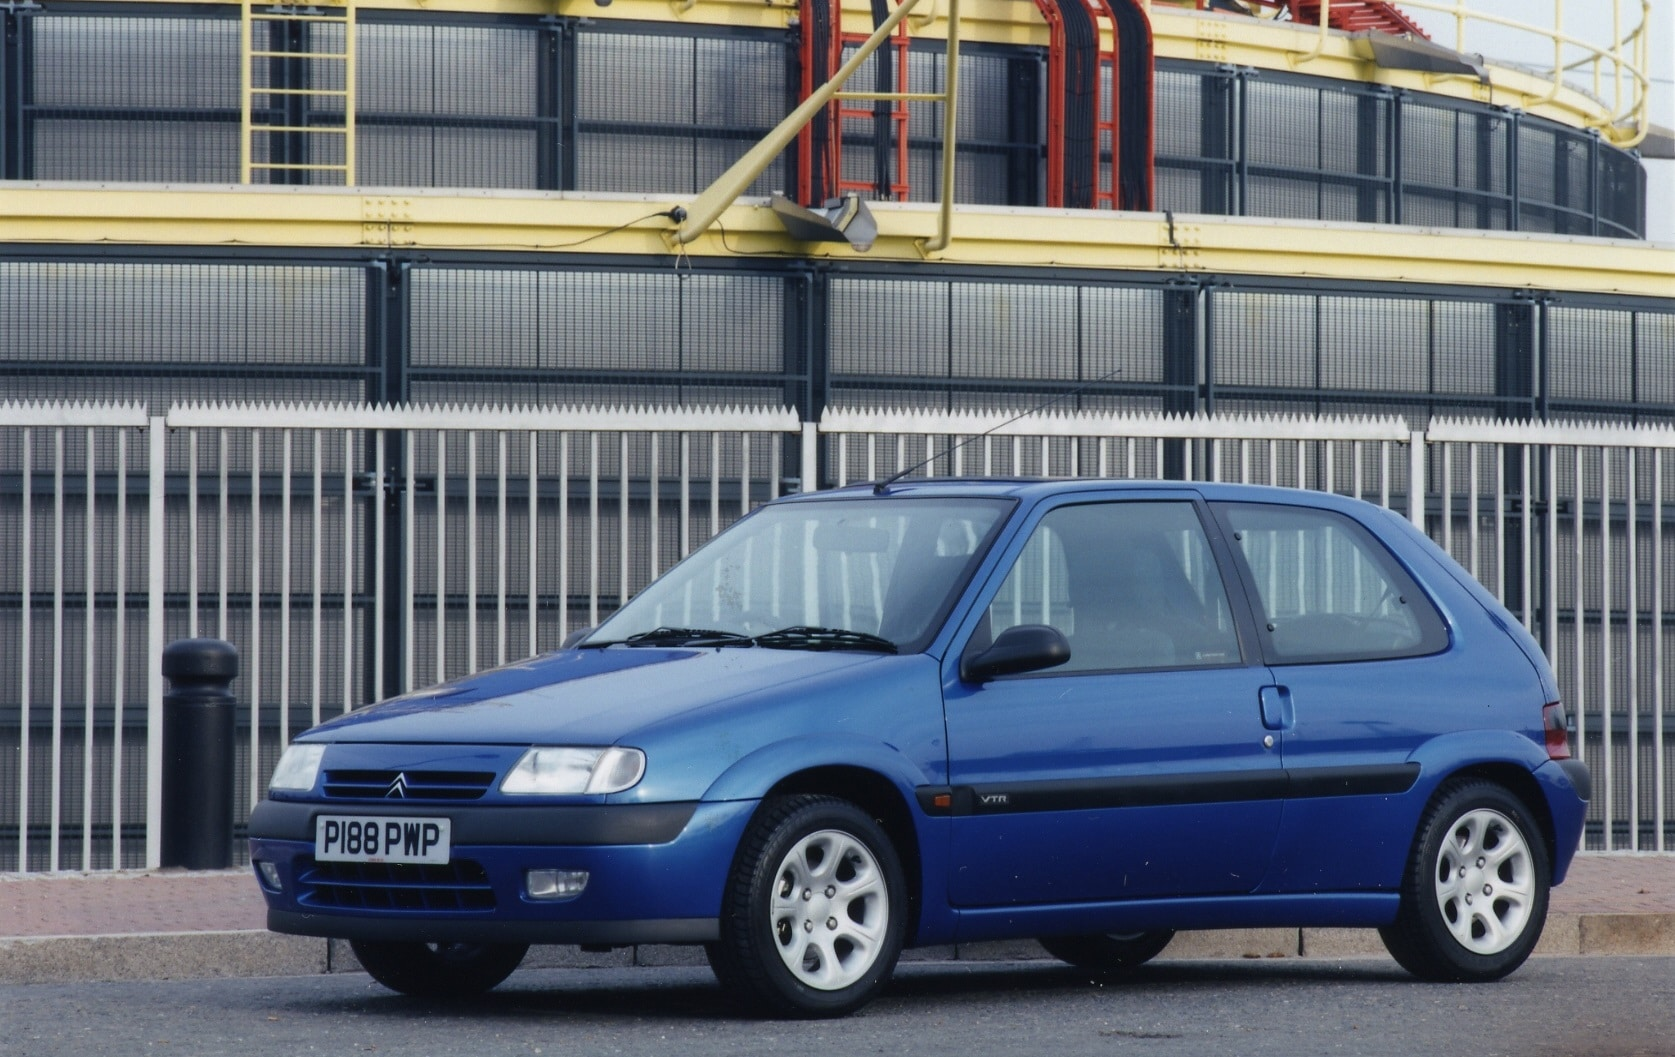 reputation, cars, crap cars, boy racer, old people car, classic car, retro car, motoring, automotive, classic car, retro car, cheap car, Volvo, Volvo 340, Volvo 360, Vauxhall, Vauxhall Nova, Nova SR, Citroen, Citroen Saxo, Citroen Saxo VTS. Citroen Saxo VTR,. VTR, VTS, Saxo VTR, Saxo VTS, MG ZS, MG, MG ZR, MG ZT, ZR, ZT, Mercedes-Benz, Mercedes-Benz W140, W140, S Class, Mercedes-Benze S Class, featured, adrian flux, not2grand, www.not2grand.co.uk, car, cars